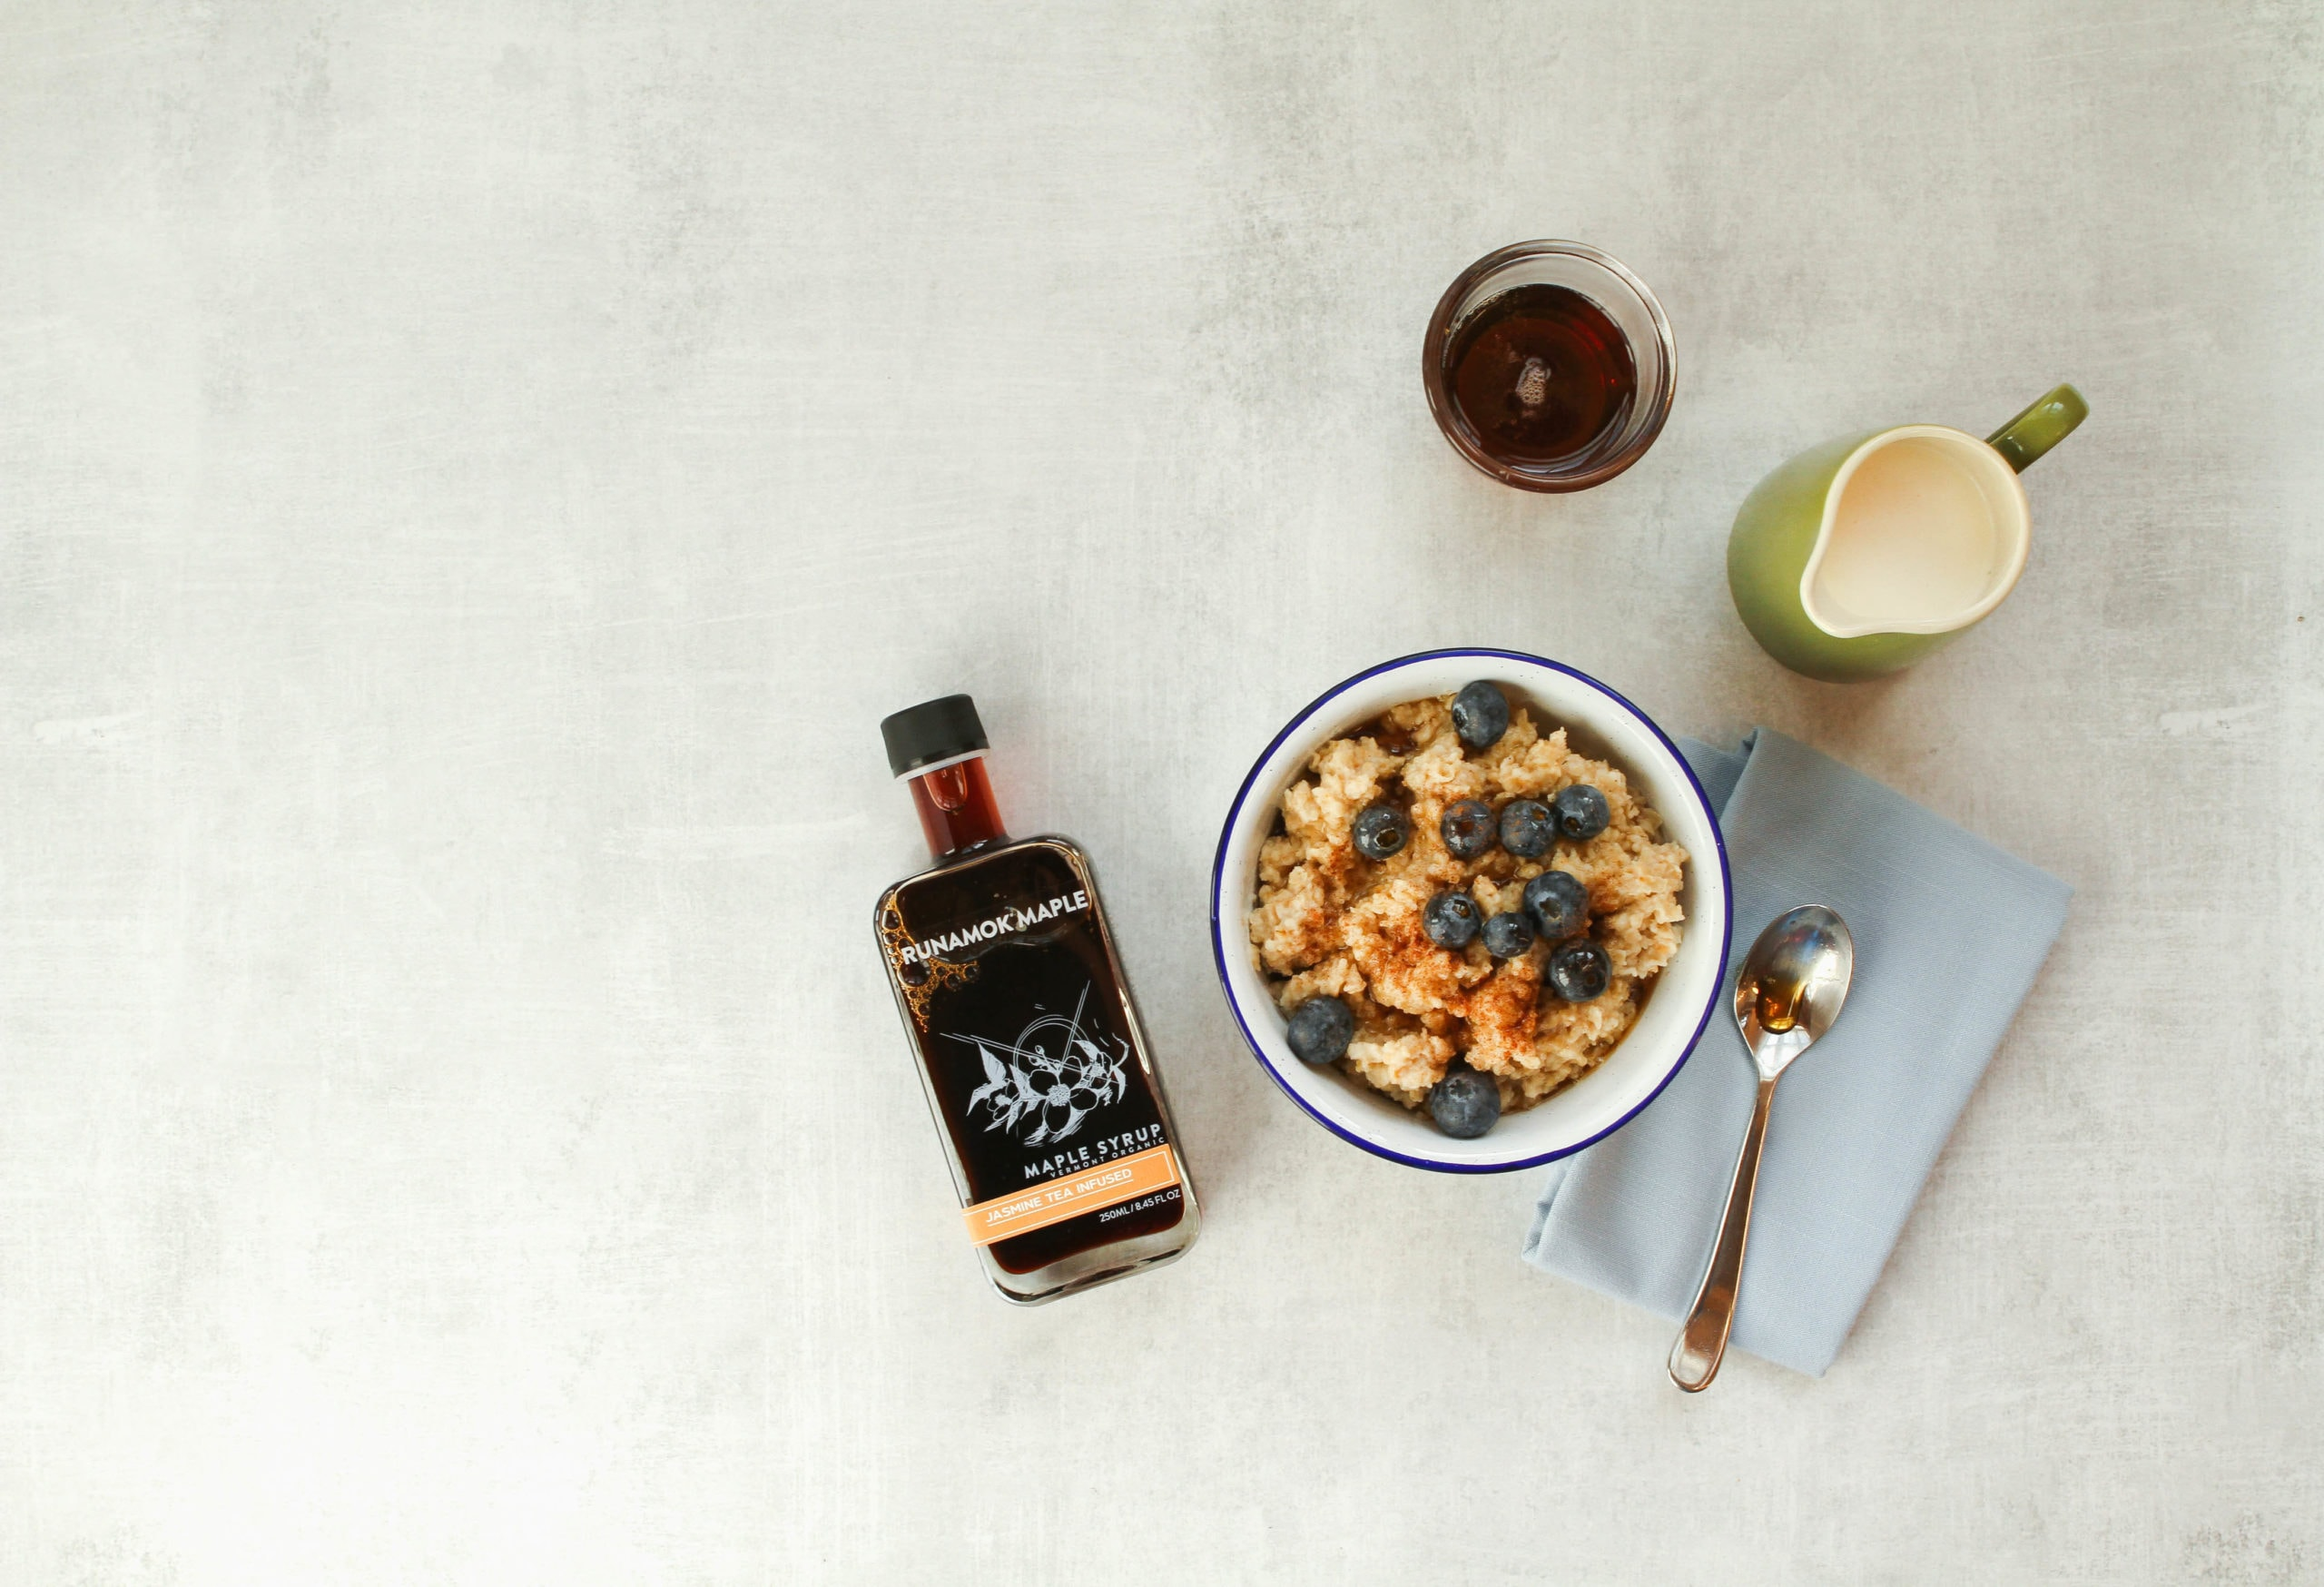 Oatmeal with Jasmine Infused Maple Syrup by Runamok Maple